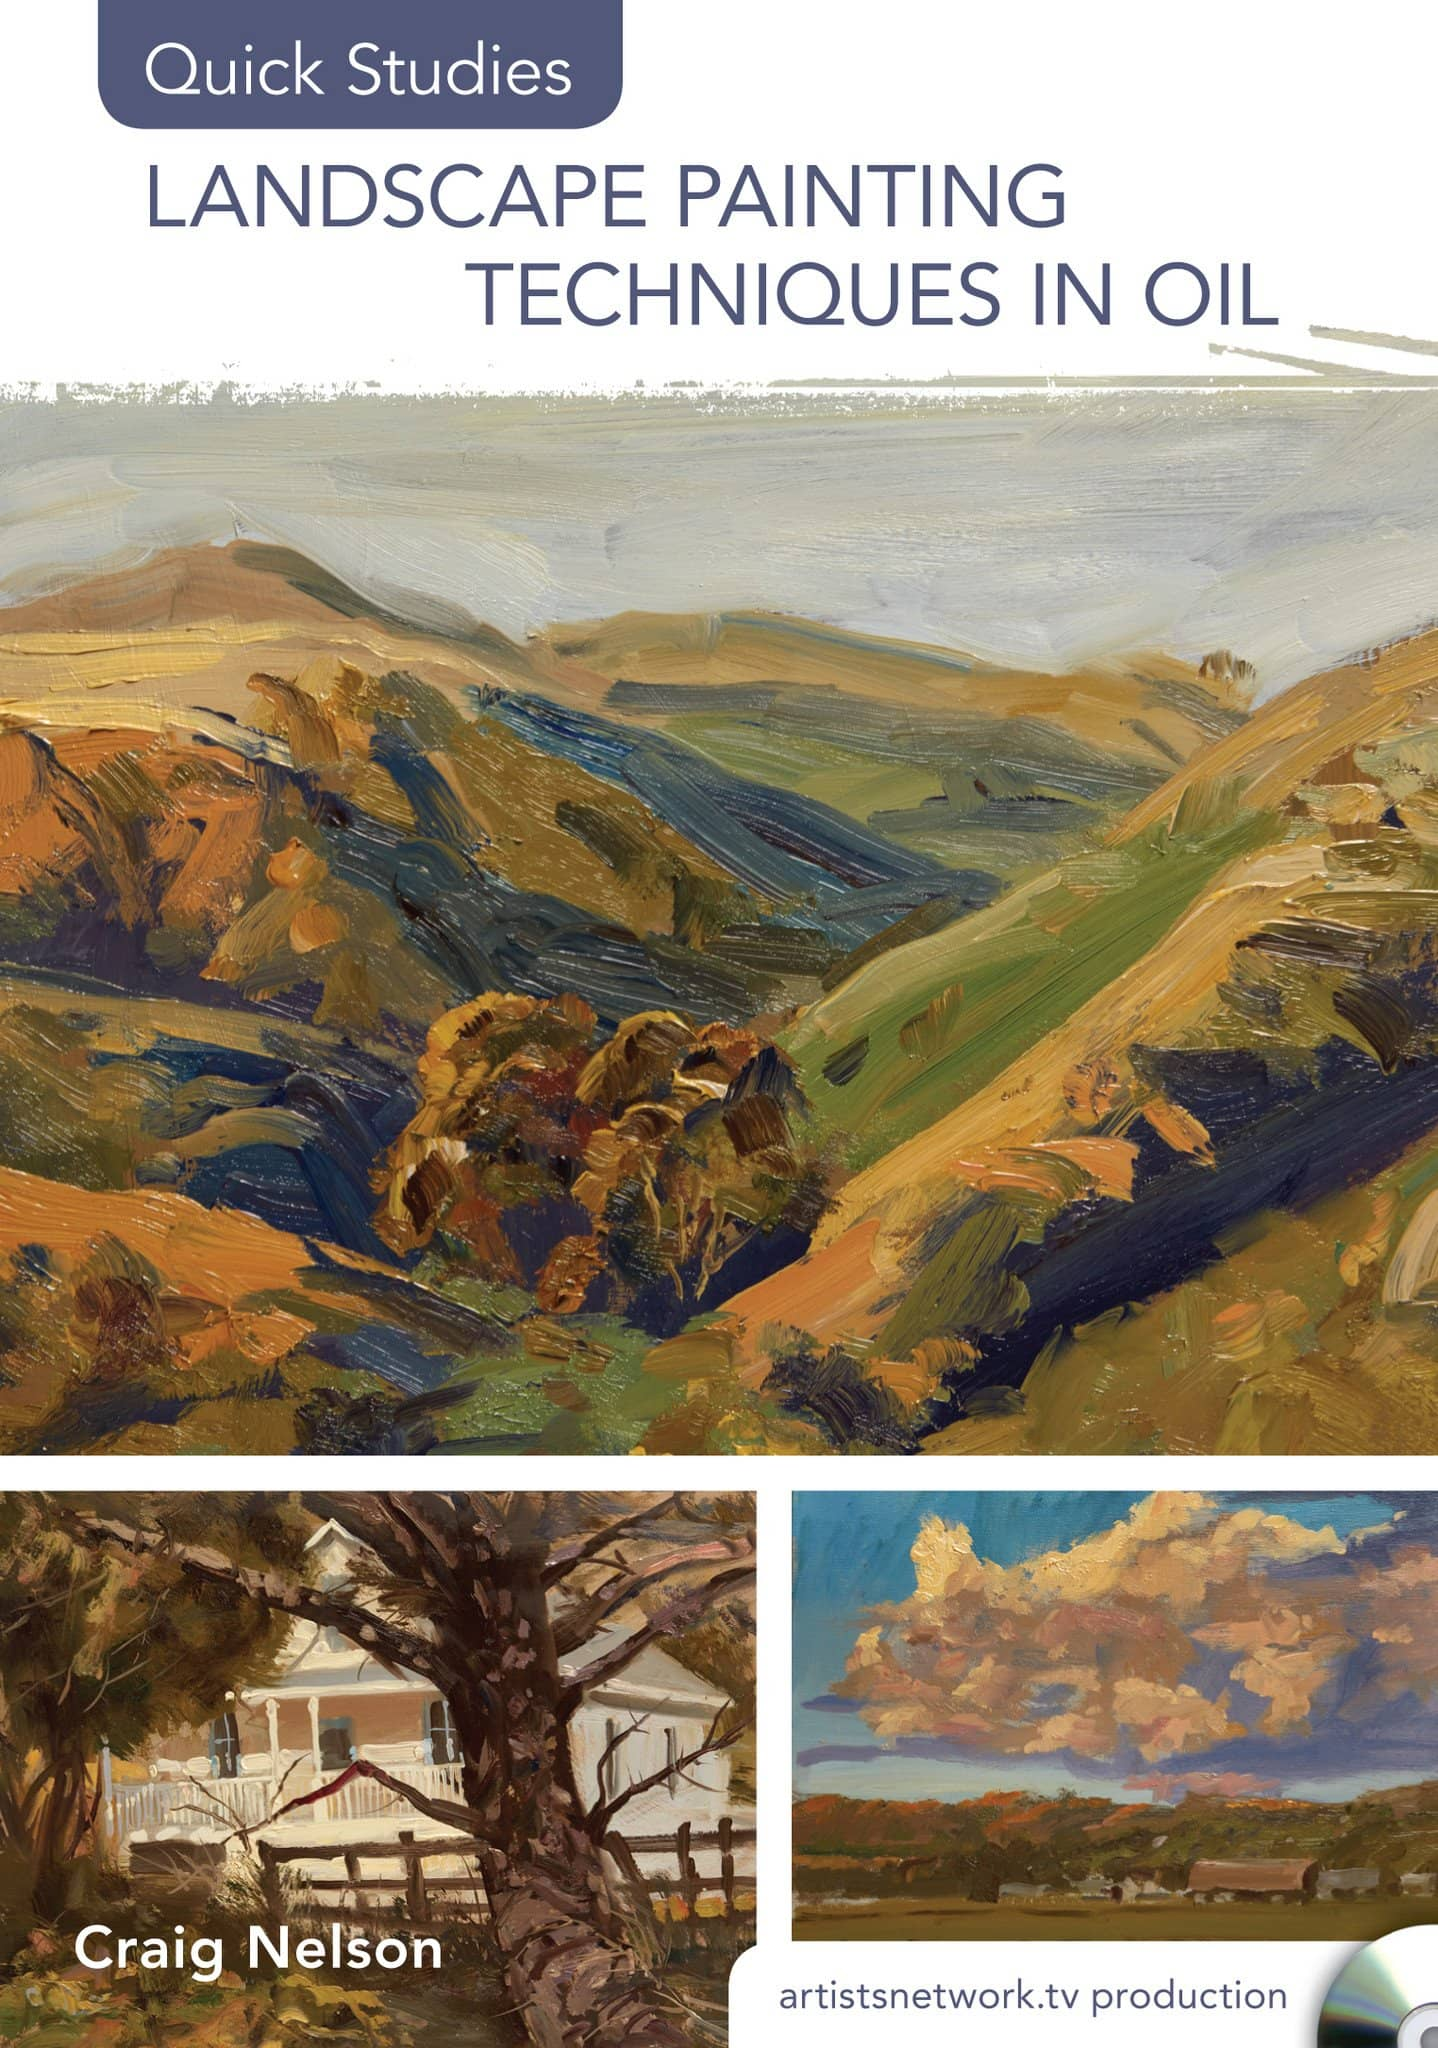 Landscape Painting Techniques in Oil (Quick Studies) with Craig Nelson